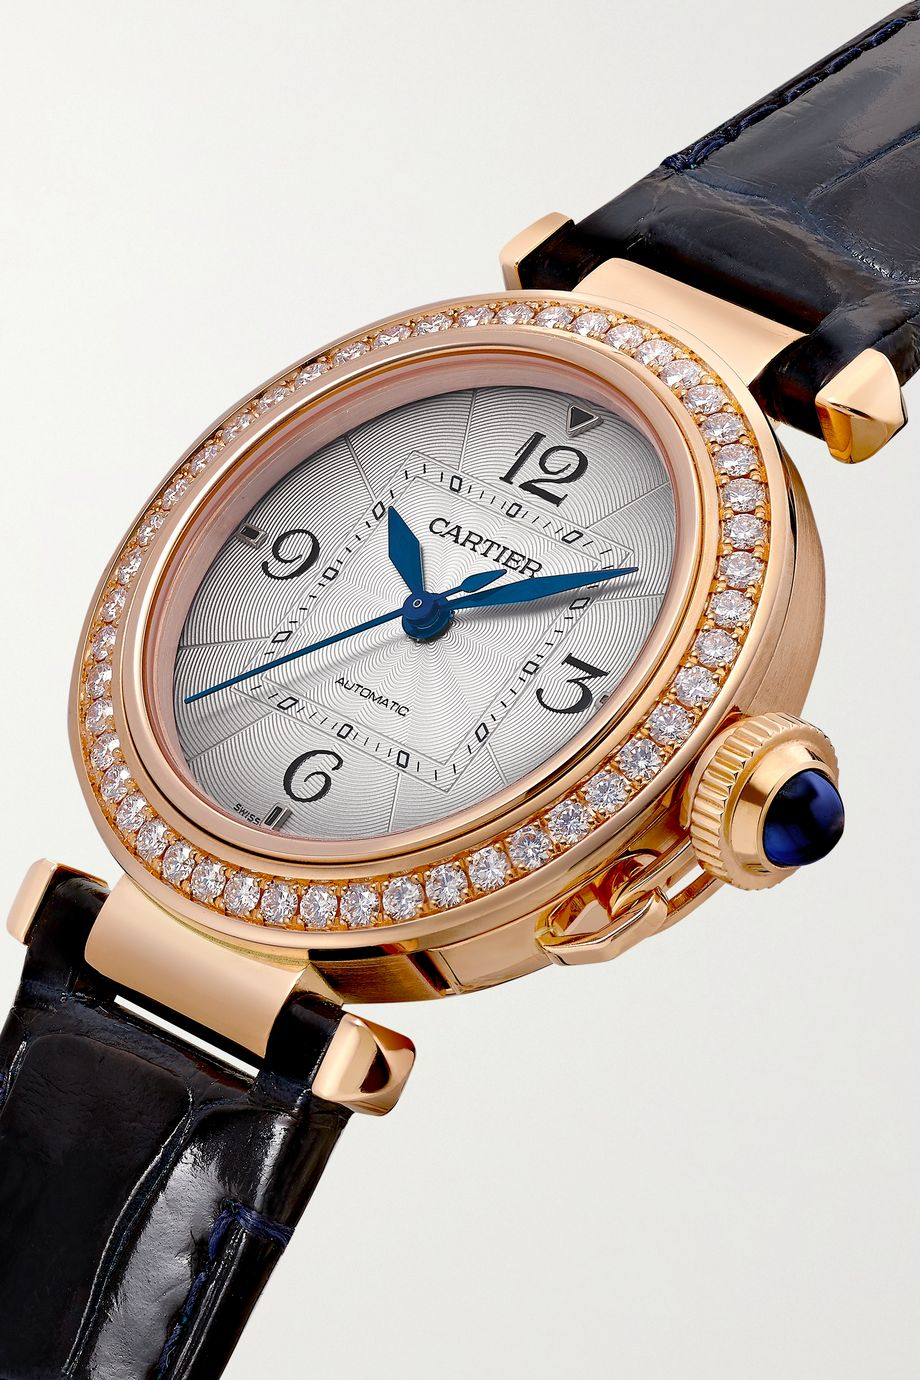 Cartier Montre en or rose 18 carats et diamants à bracelet en alligator Pasha de Cartier Automatique 35 mm